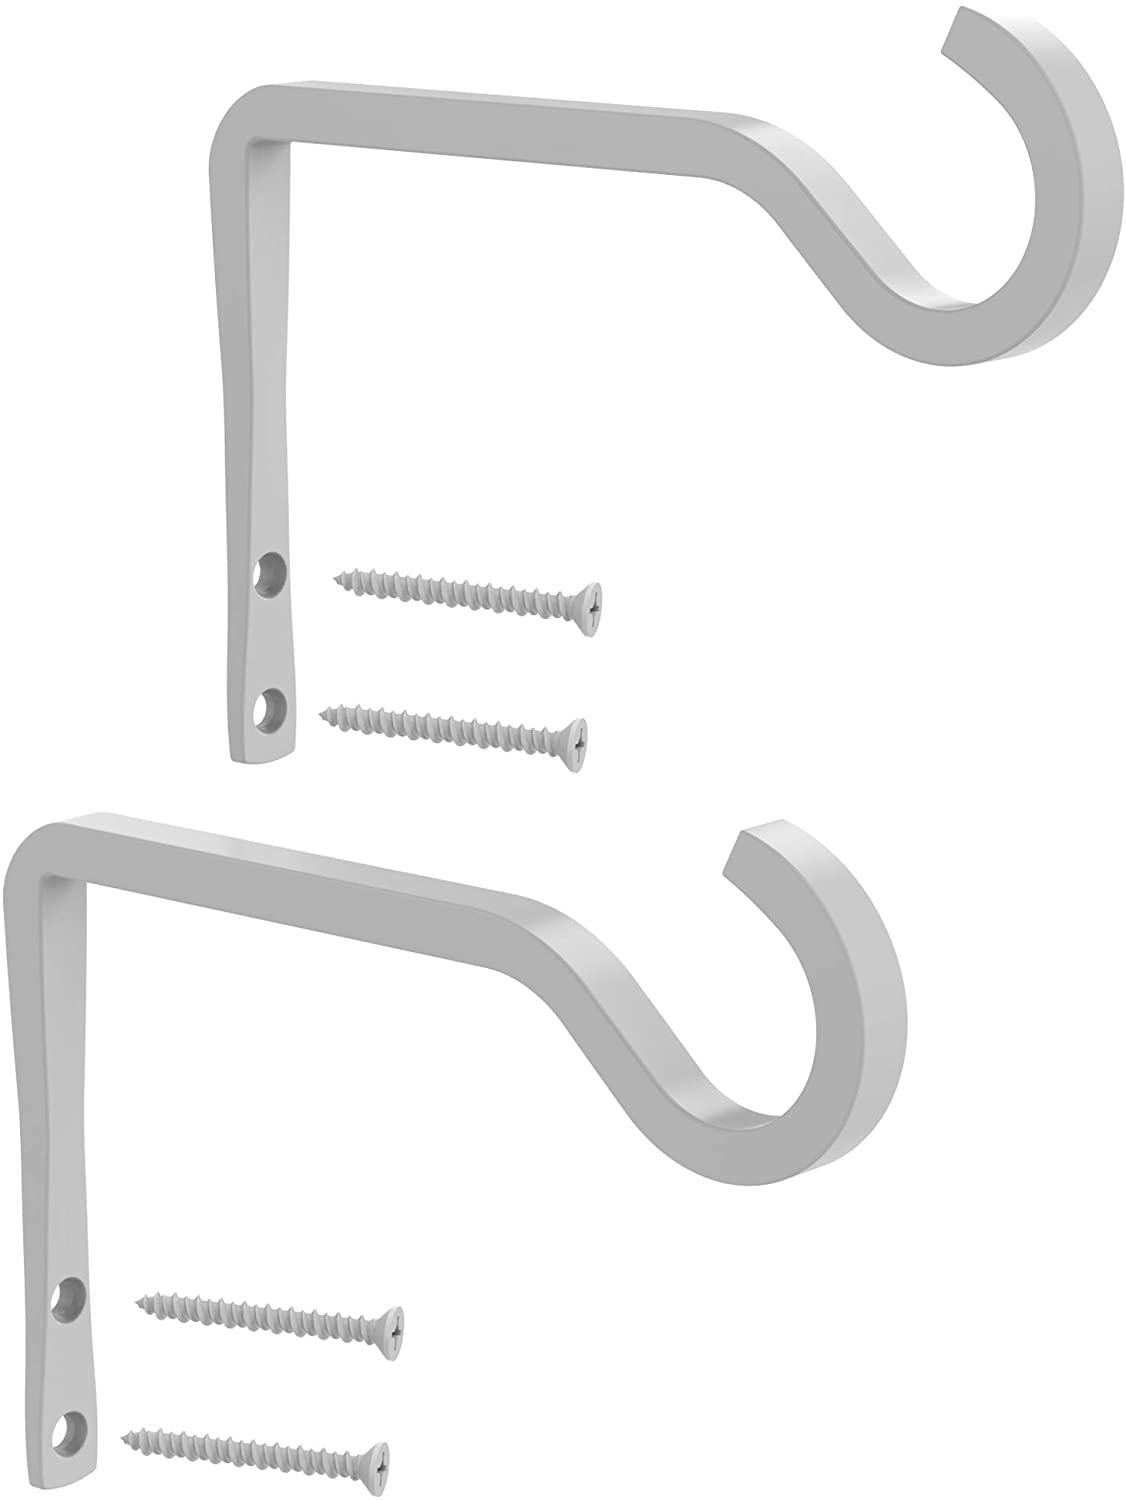 16/'/' Steel Hangers For Plastic Pots By Sophie/'s Orchids 6 Pack 8113674